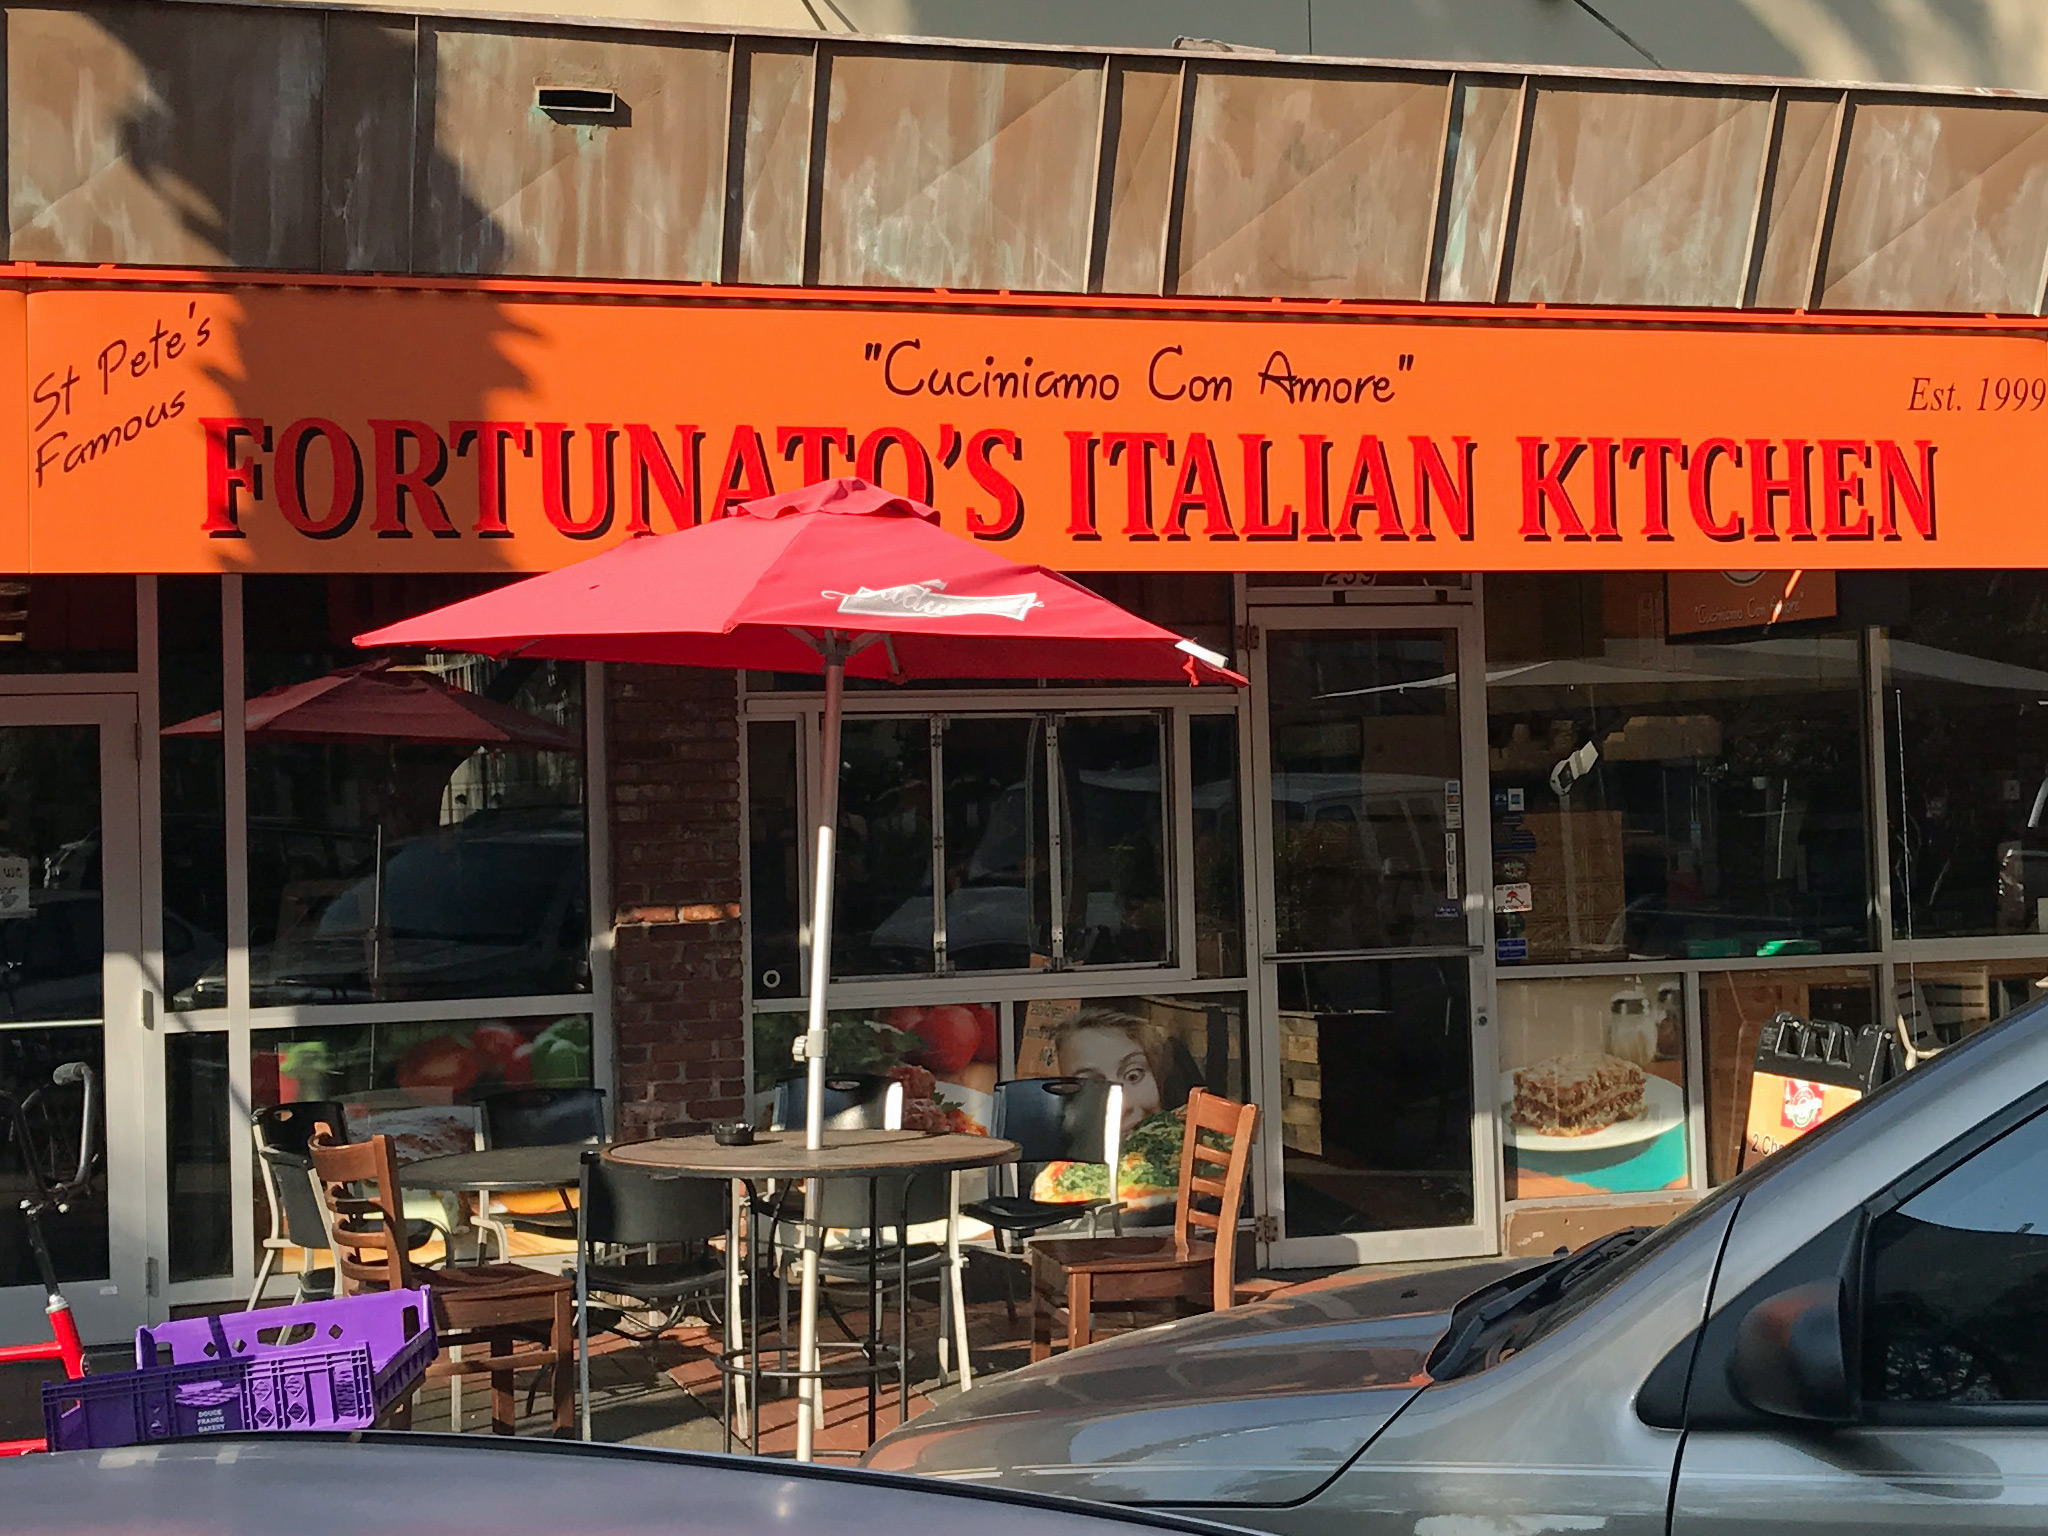 Fortunato's Italian Market / KItchen Will Soon Be Sharing a New Kitchen & Co-Promotions